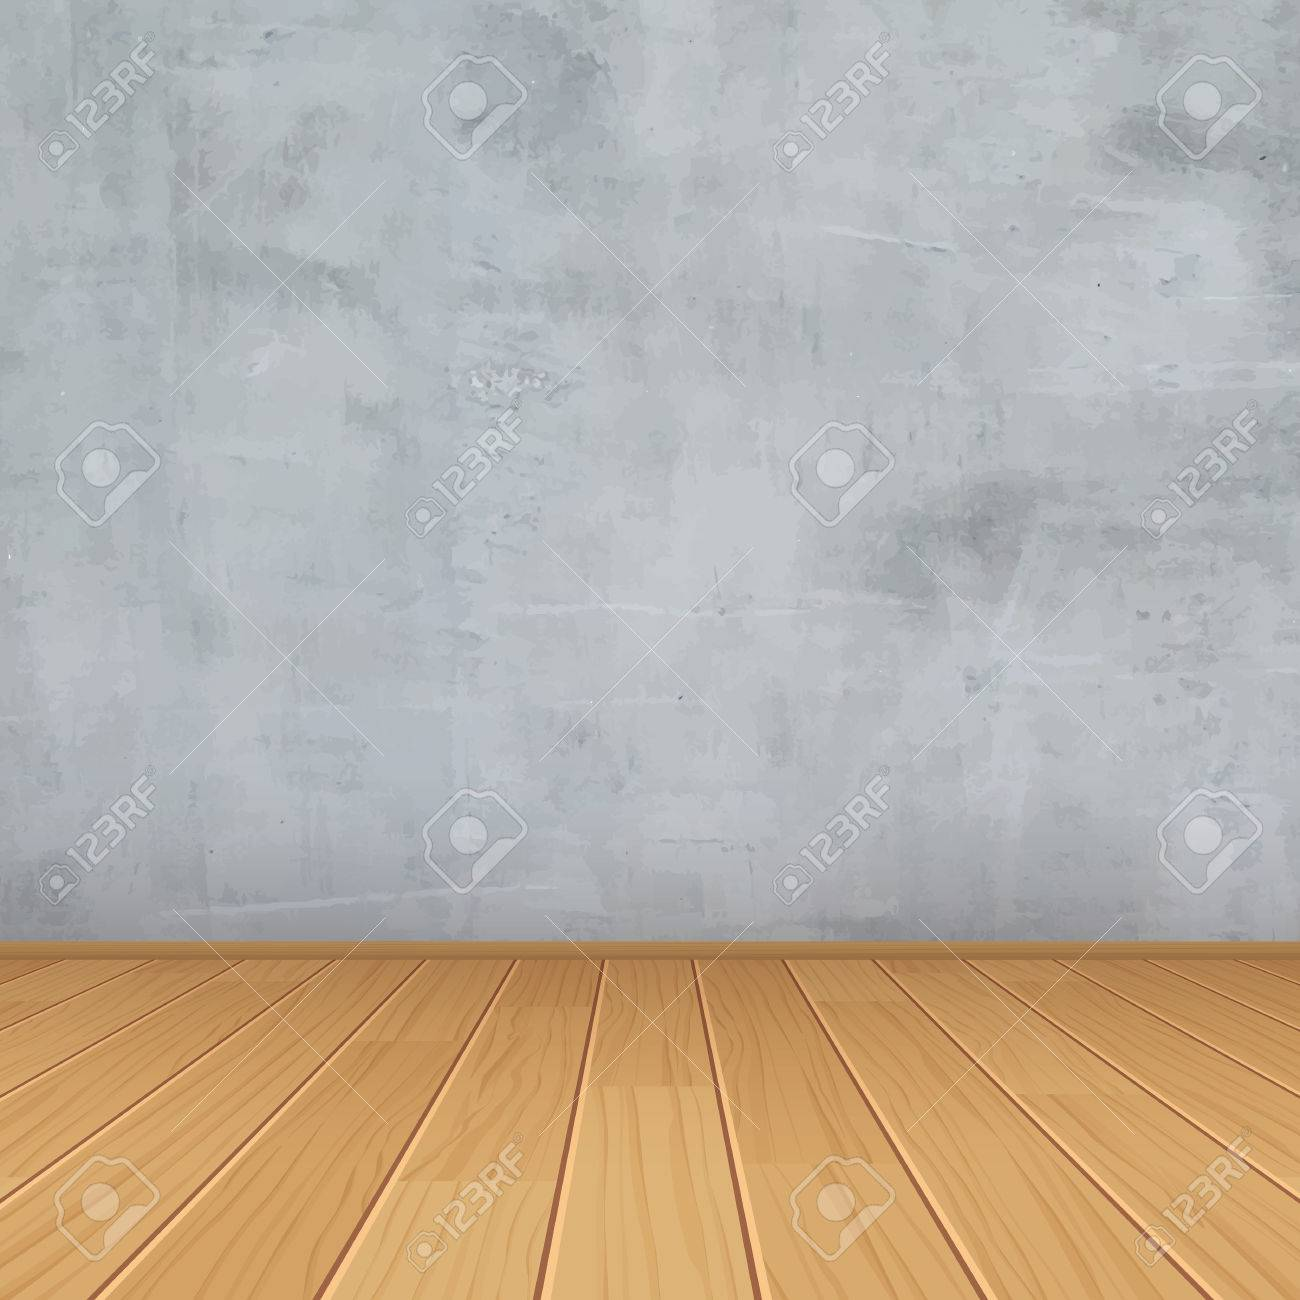 empty room with concrete wall and wooden floor - 54616552